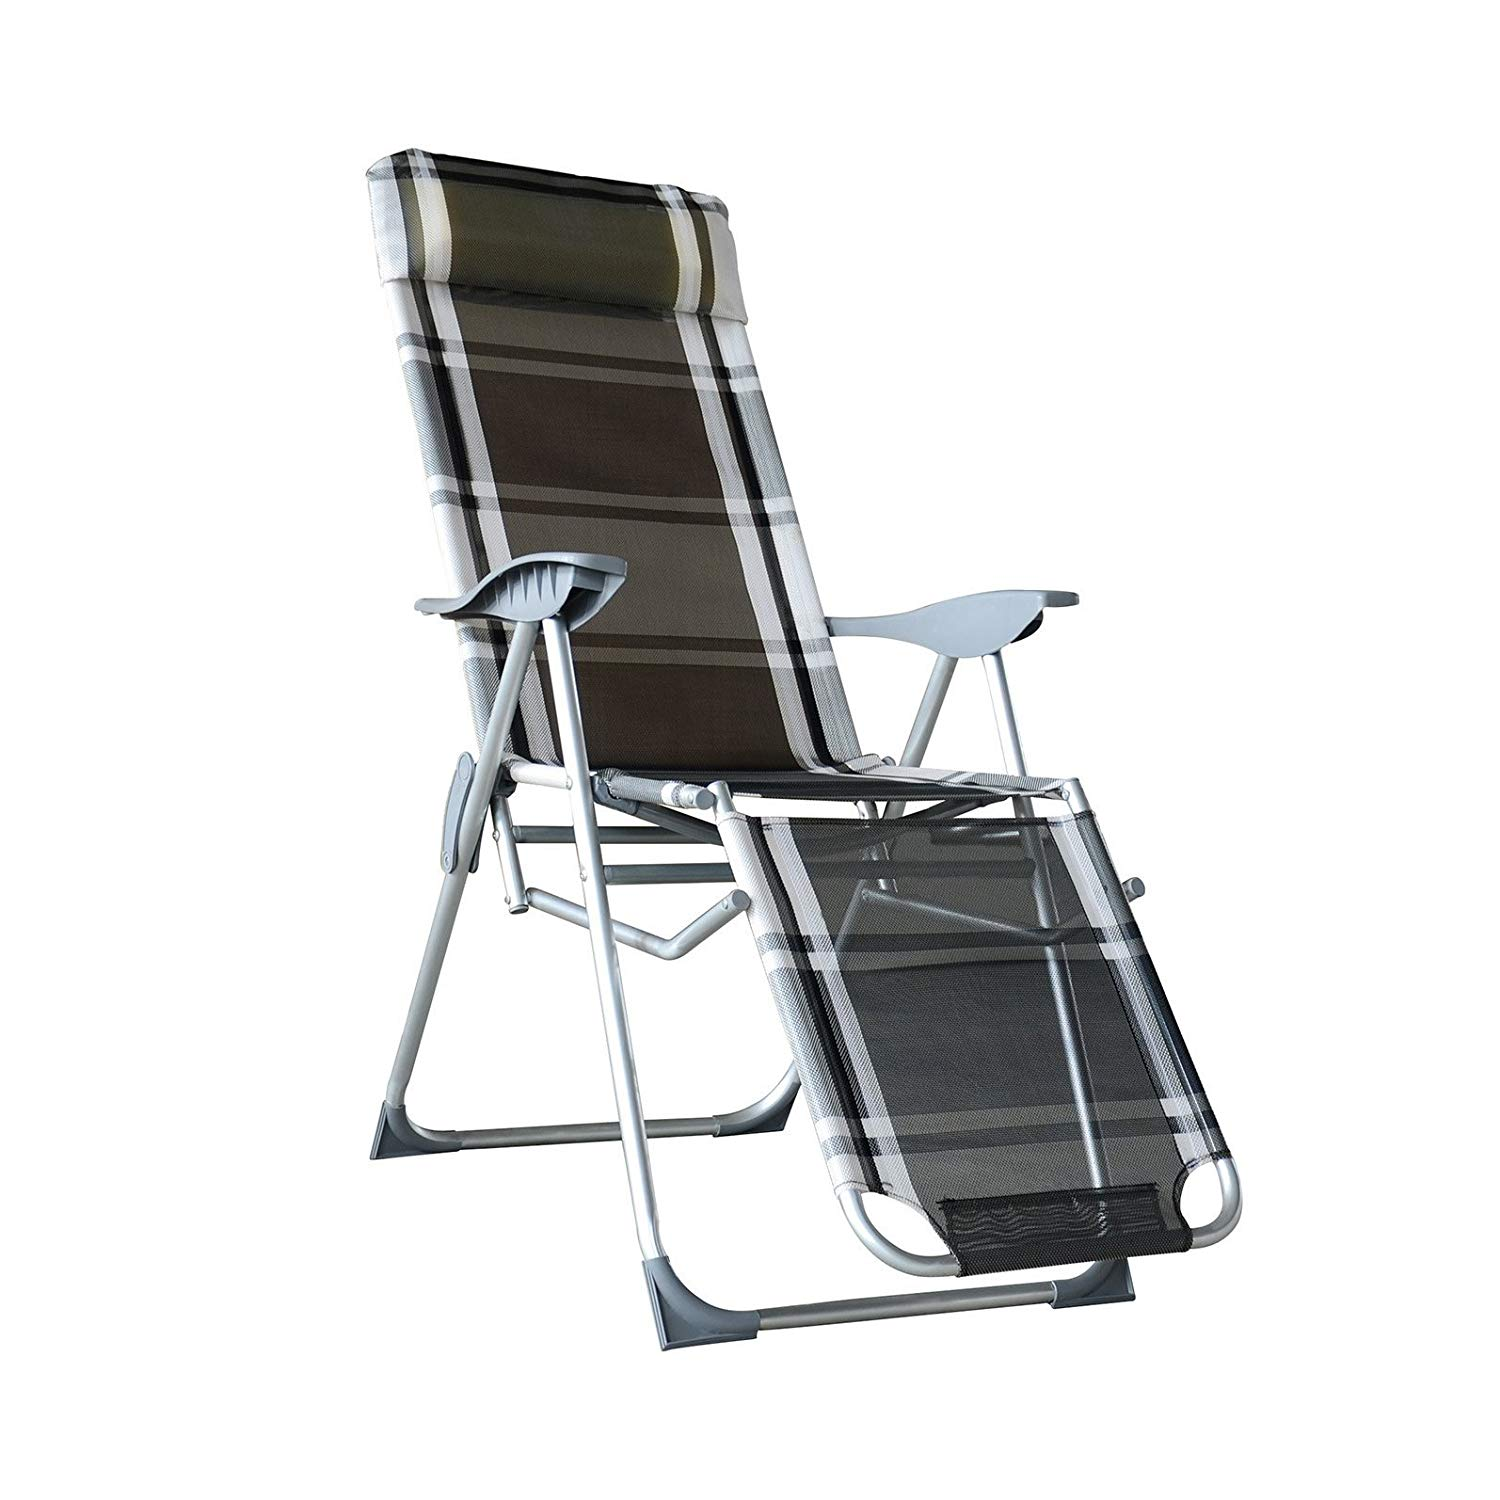 Zero Gravity Chair Recliner Orno Ttobe Zero Gravity Lounge Chair Recliners For Patio Pool Adjustable